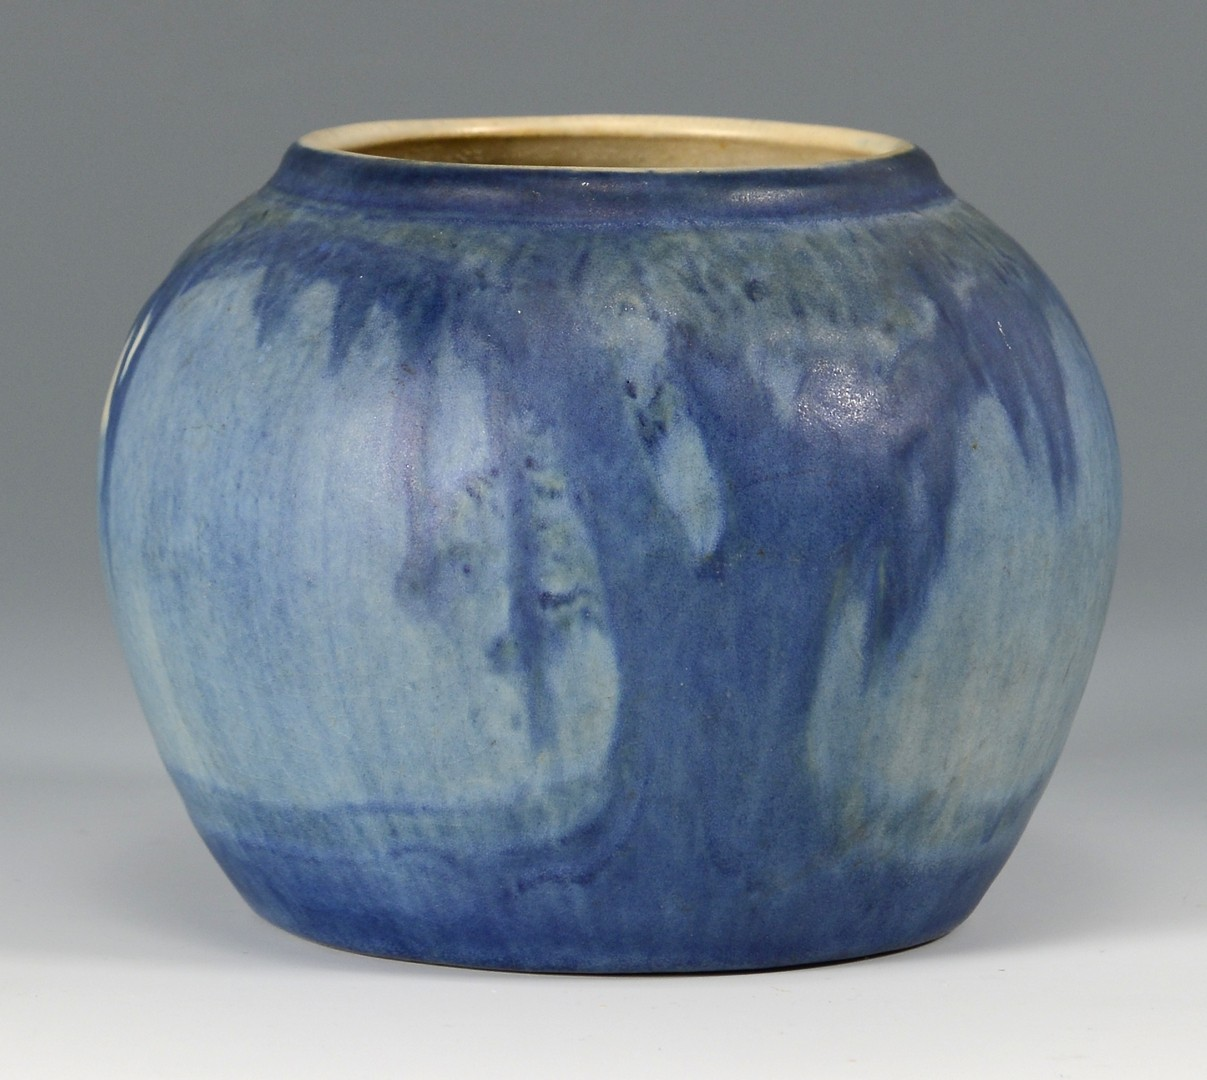 Lot 473: Newcomb College Art Pottery Vase